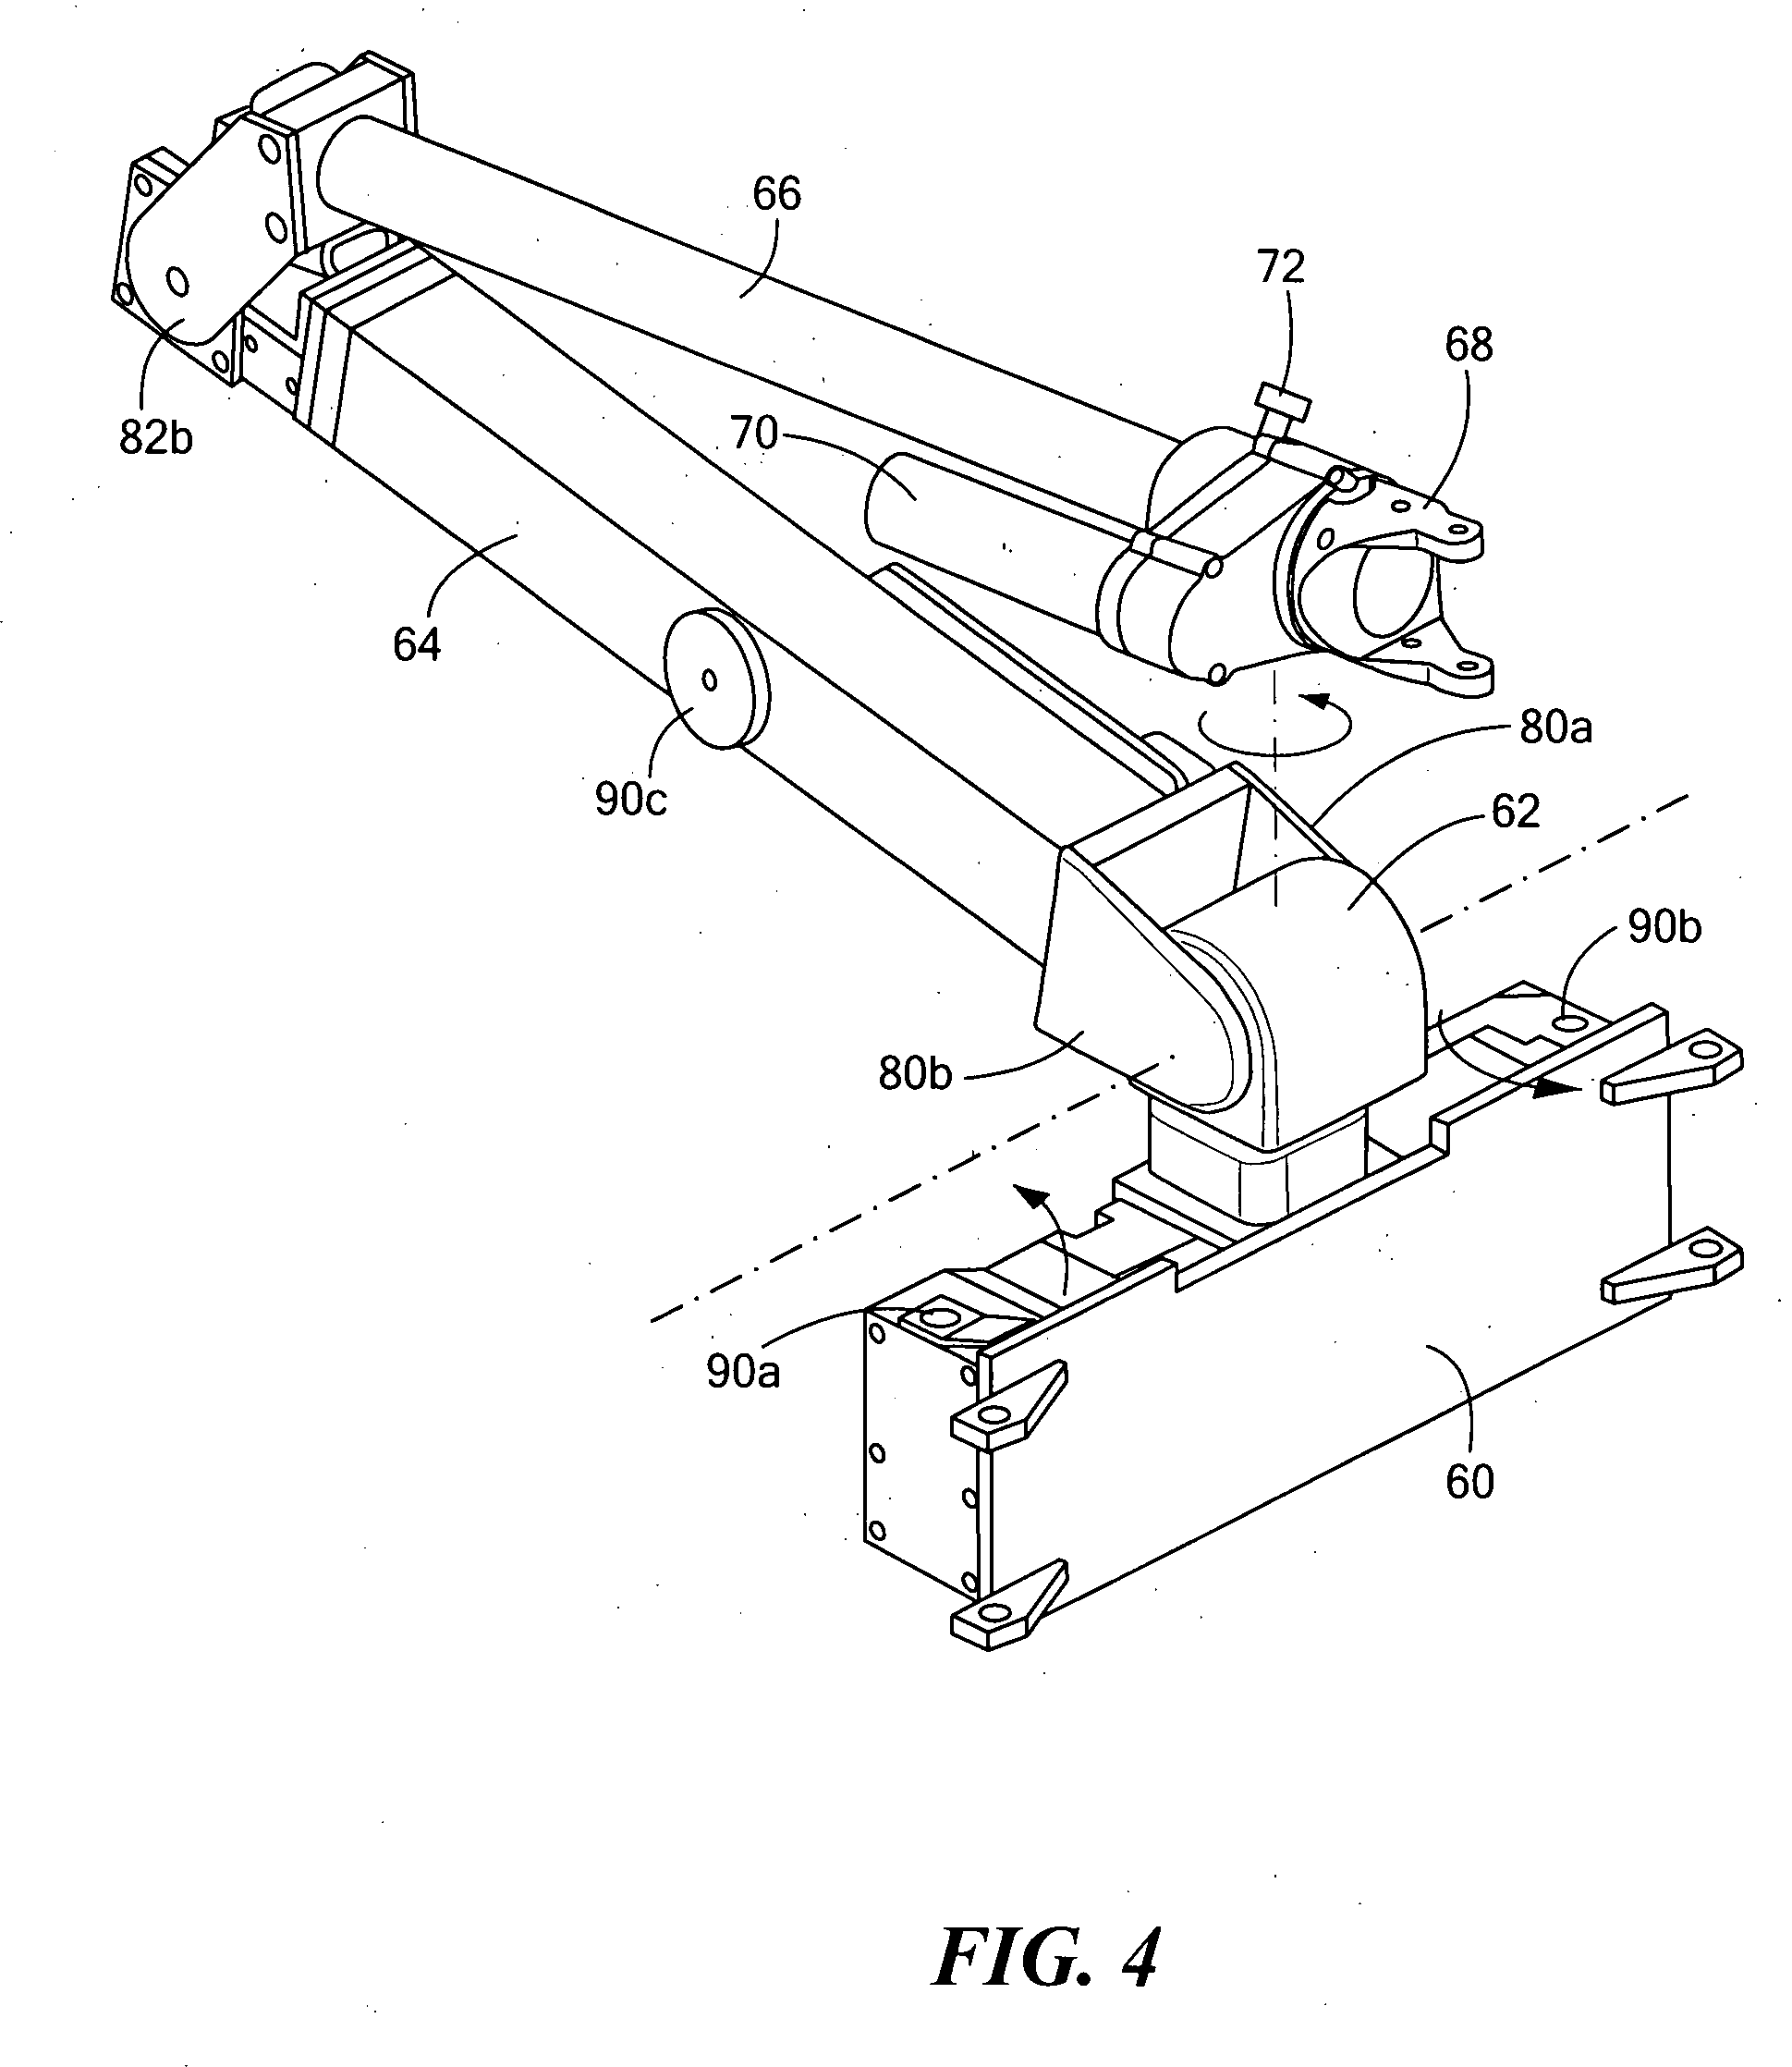 patent us20090071281 - robot arm assembly